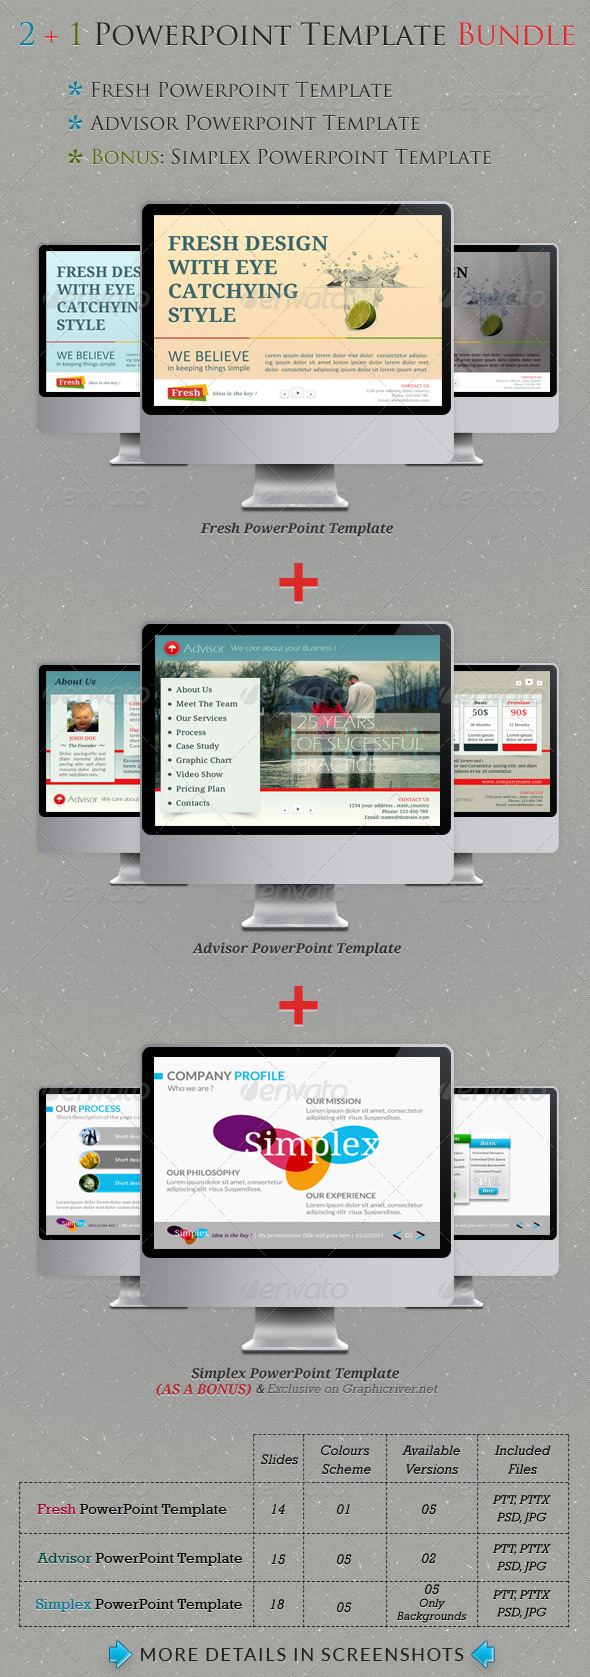 2+1 Powerpoint Templates Bundle - Creative Powerpoint Templates